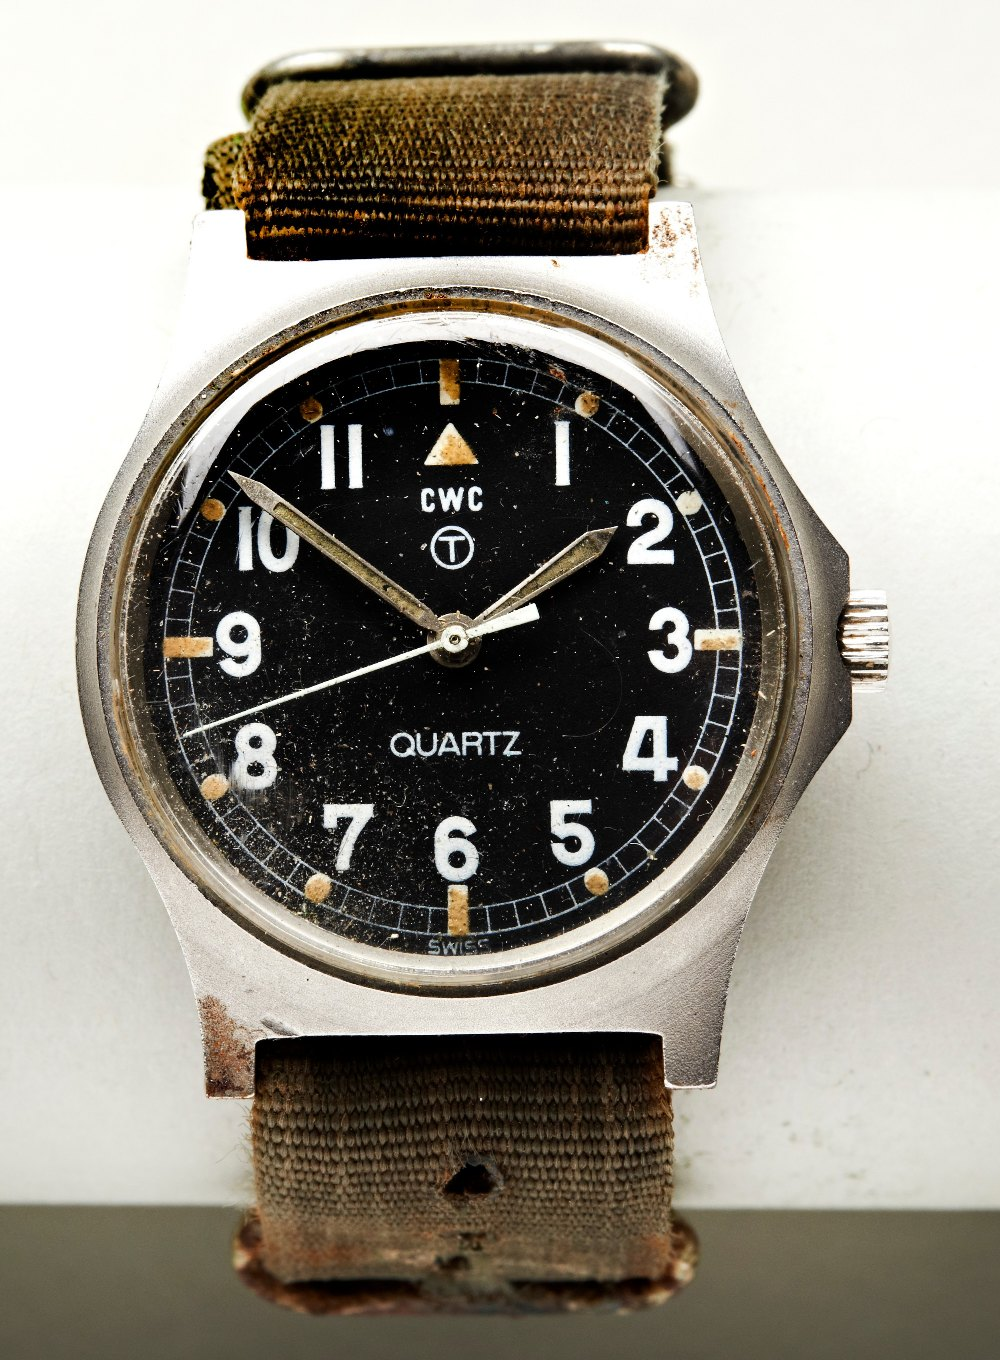 CWC 'FATBOY' MILITARY QUARTZ WATCH, c1980, with tritium dial, case backstamps with arrow and 6645-99